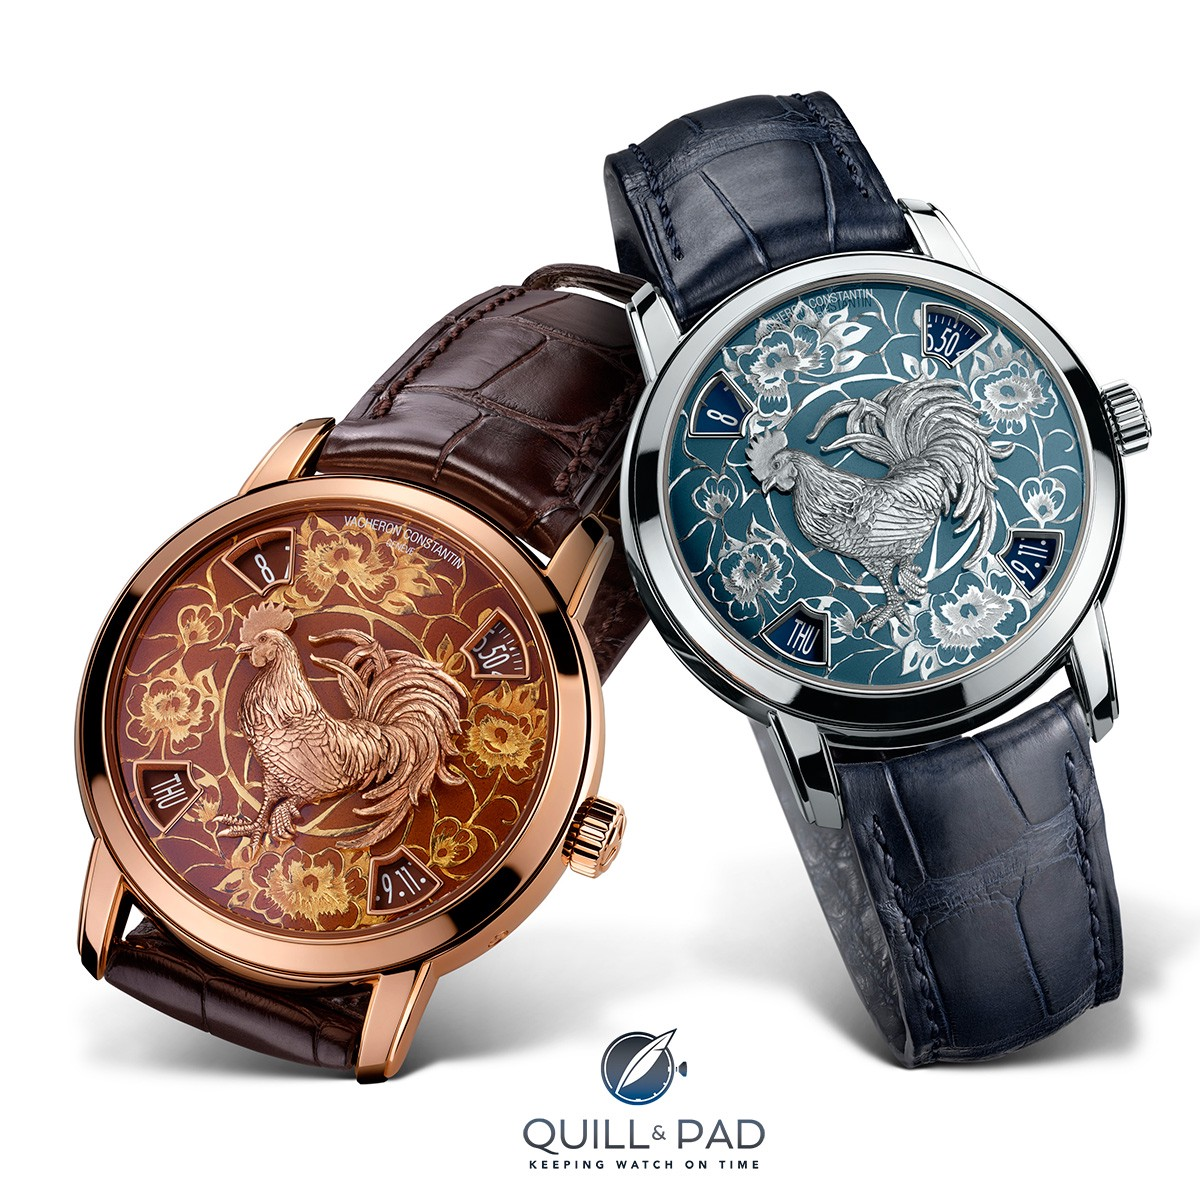 Vacheron Constantin Métiers d'Art Legend of the Chinese Zodiac Year of the Rooster